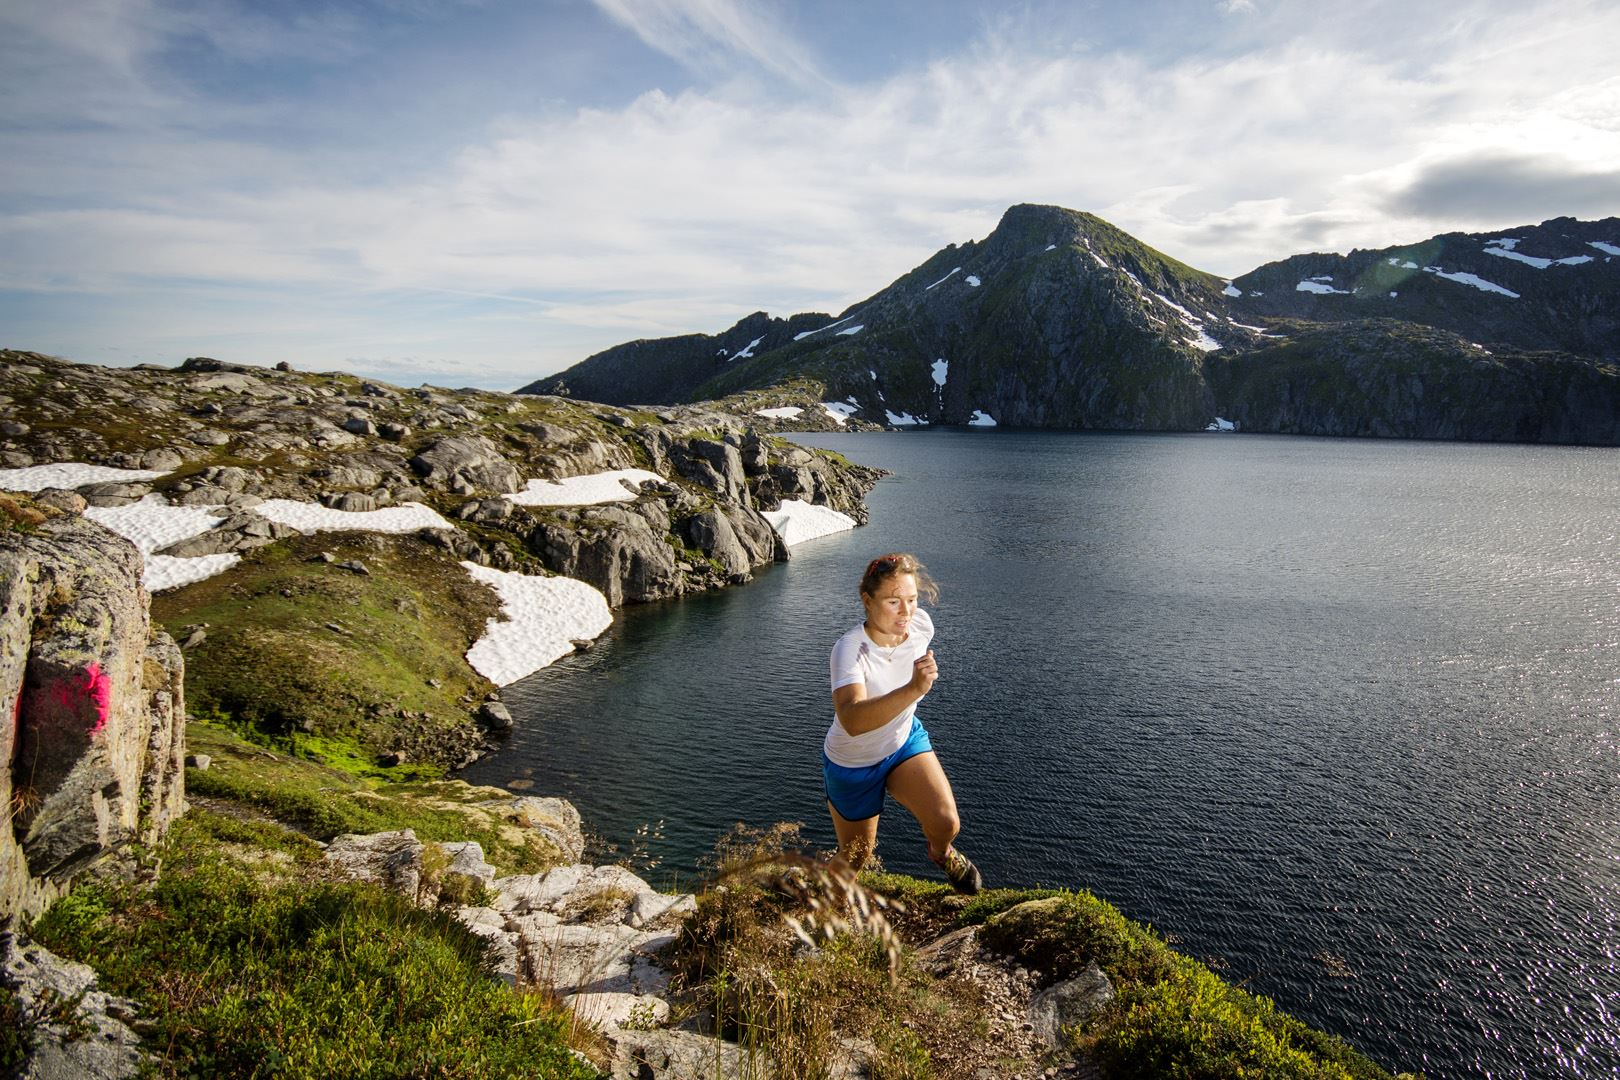 Kai-Otto Melau, The Arctic Triple - Lofoten Triathlon